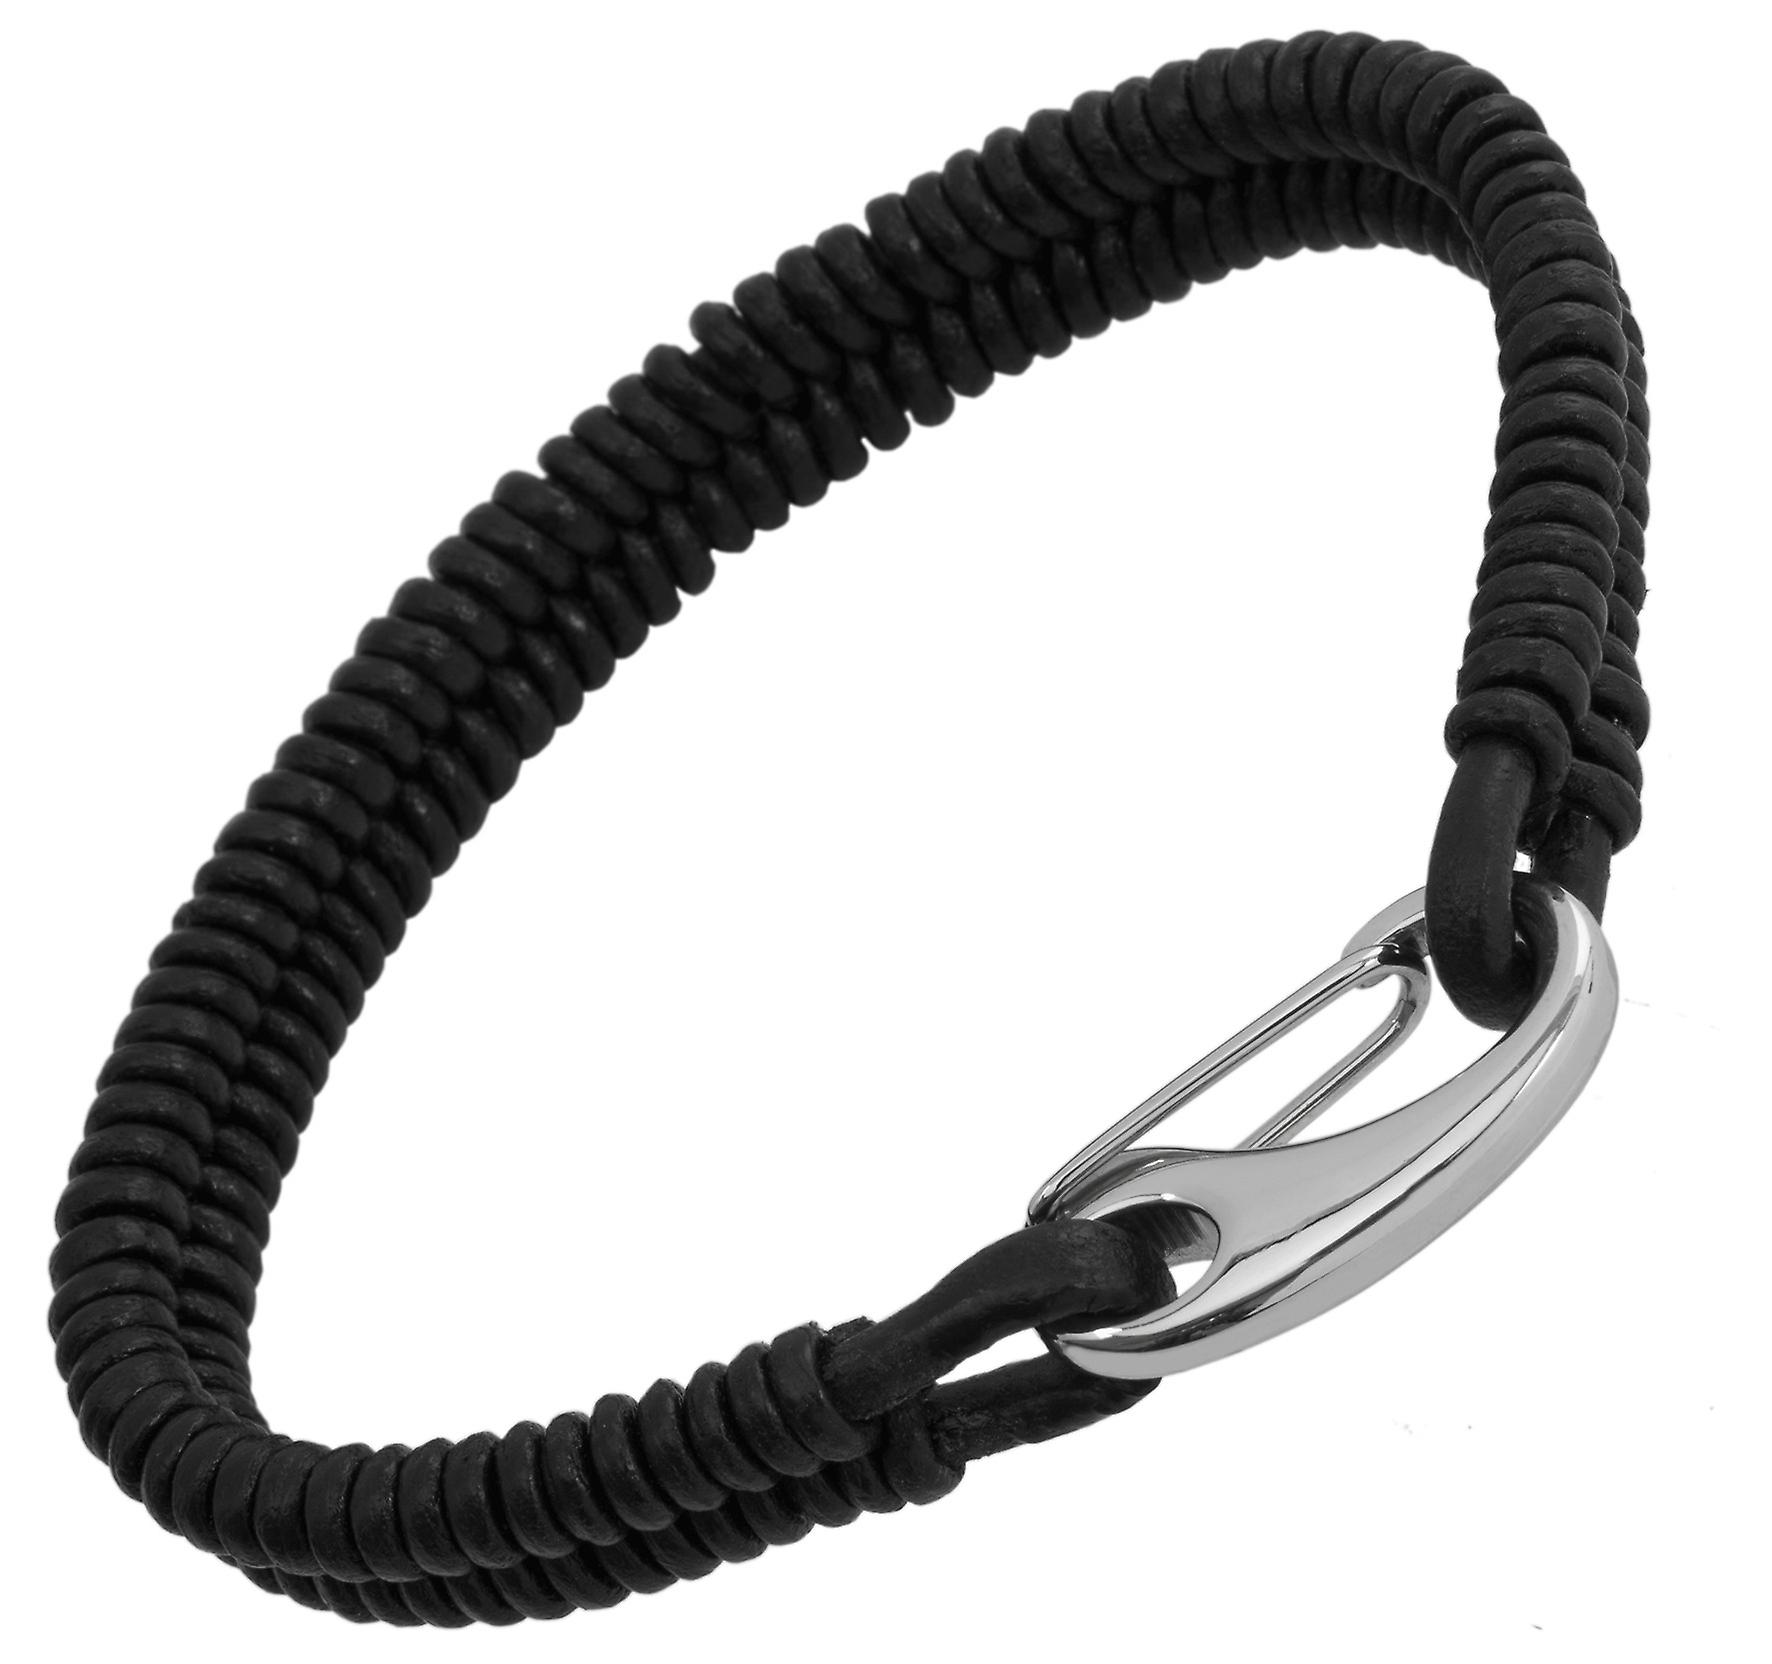 Burgmeister Leather bracelet, JBM4014-759